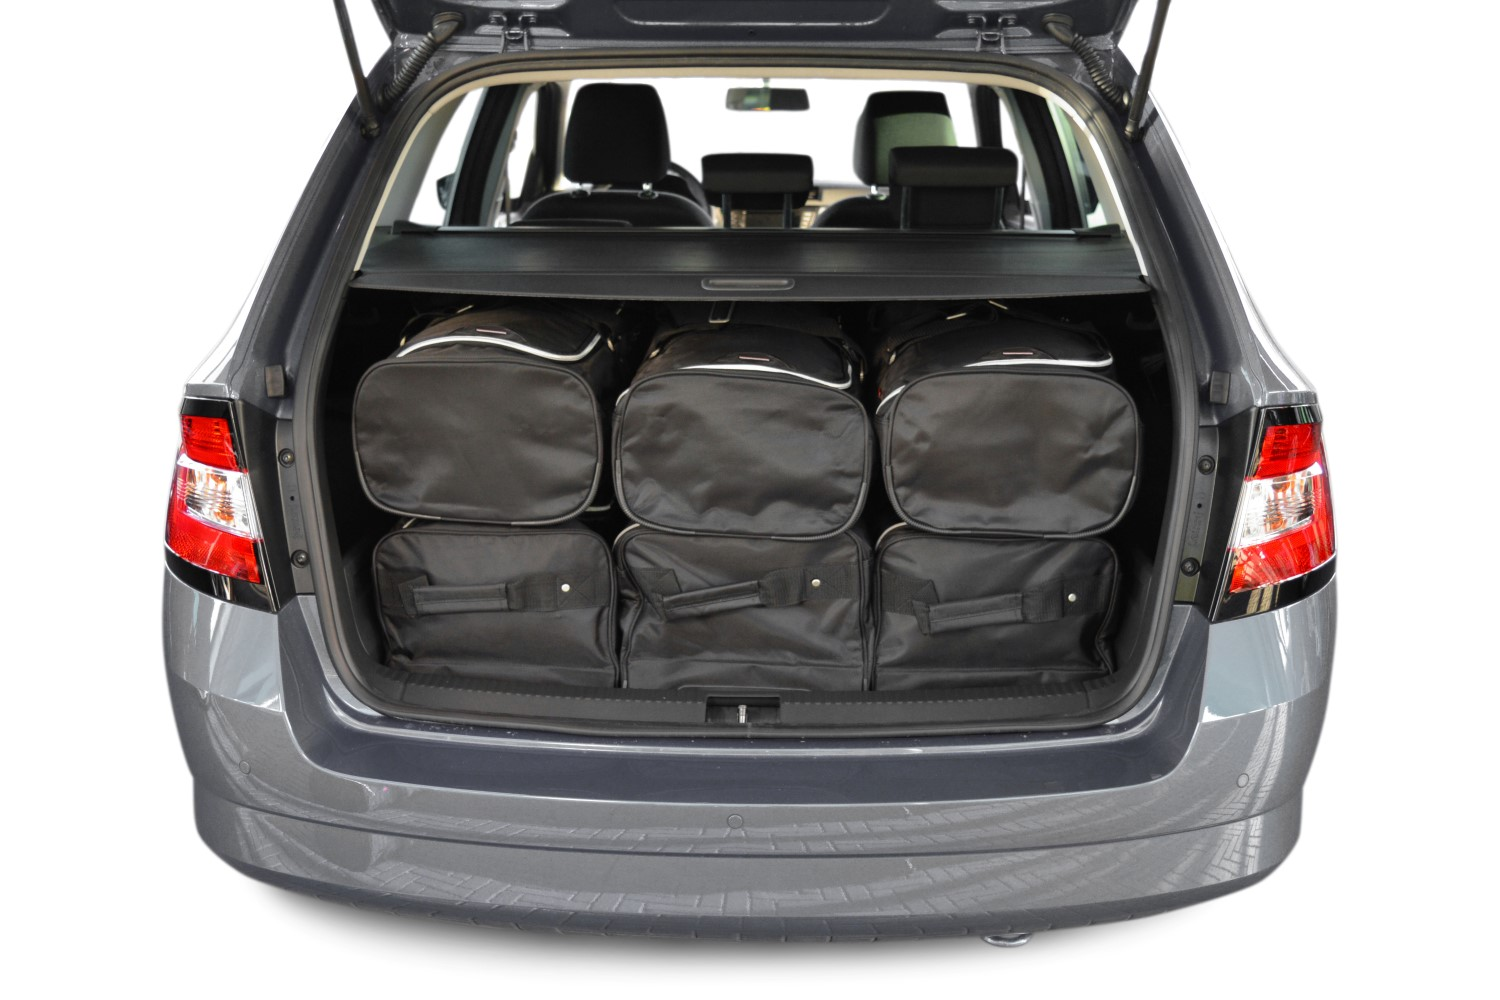 fabia skoda fabia ii combi 5j 2007 2014 reistassenset. Black Bedroom Furniture Sets. Home Design Ideas